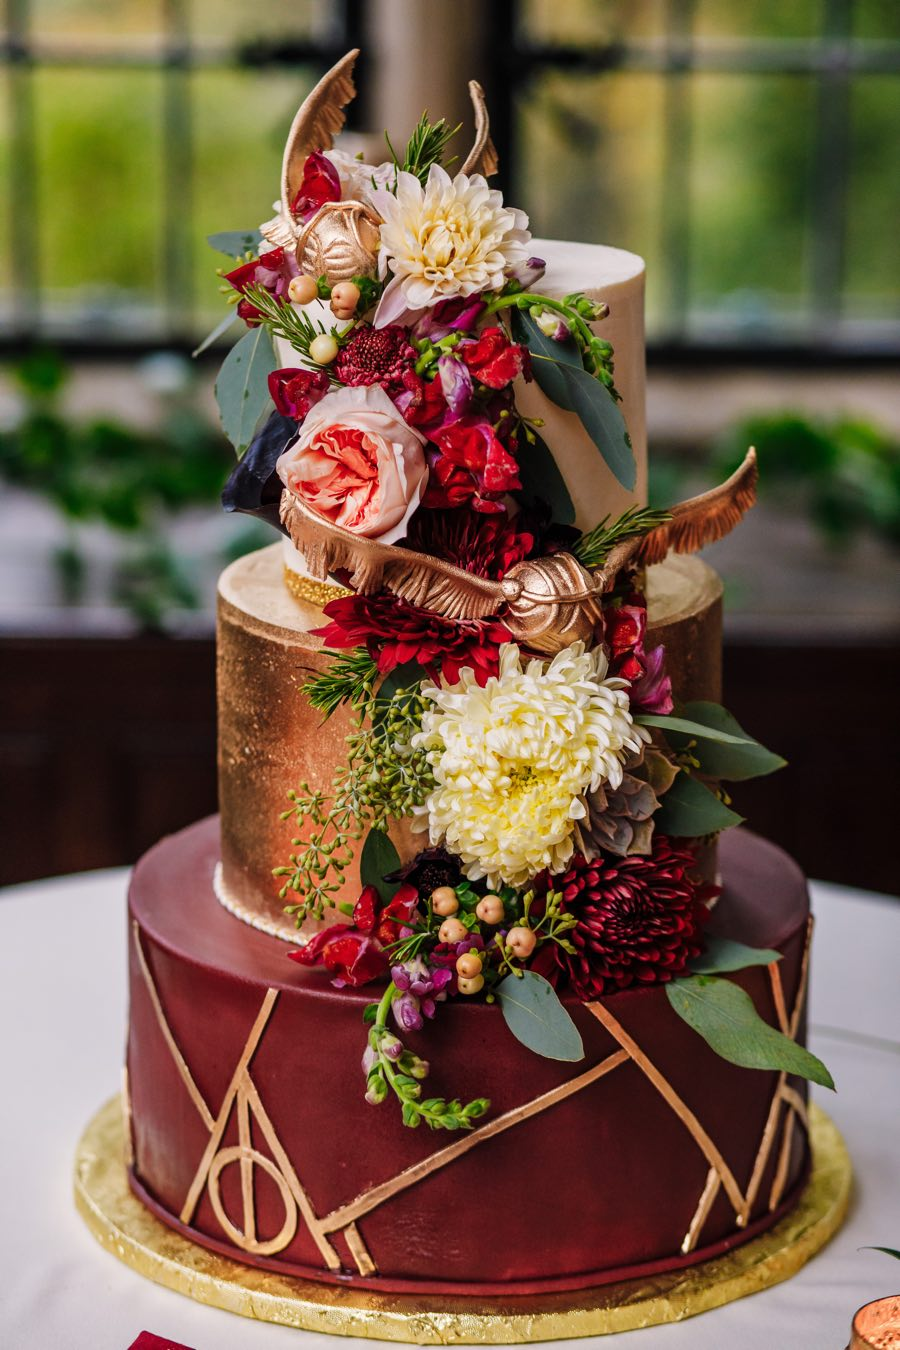 Harry Potter Wedding Cake.A Harry Potter Wedding Filled With Magical Details